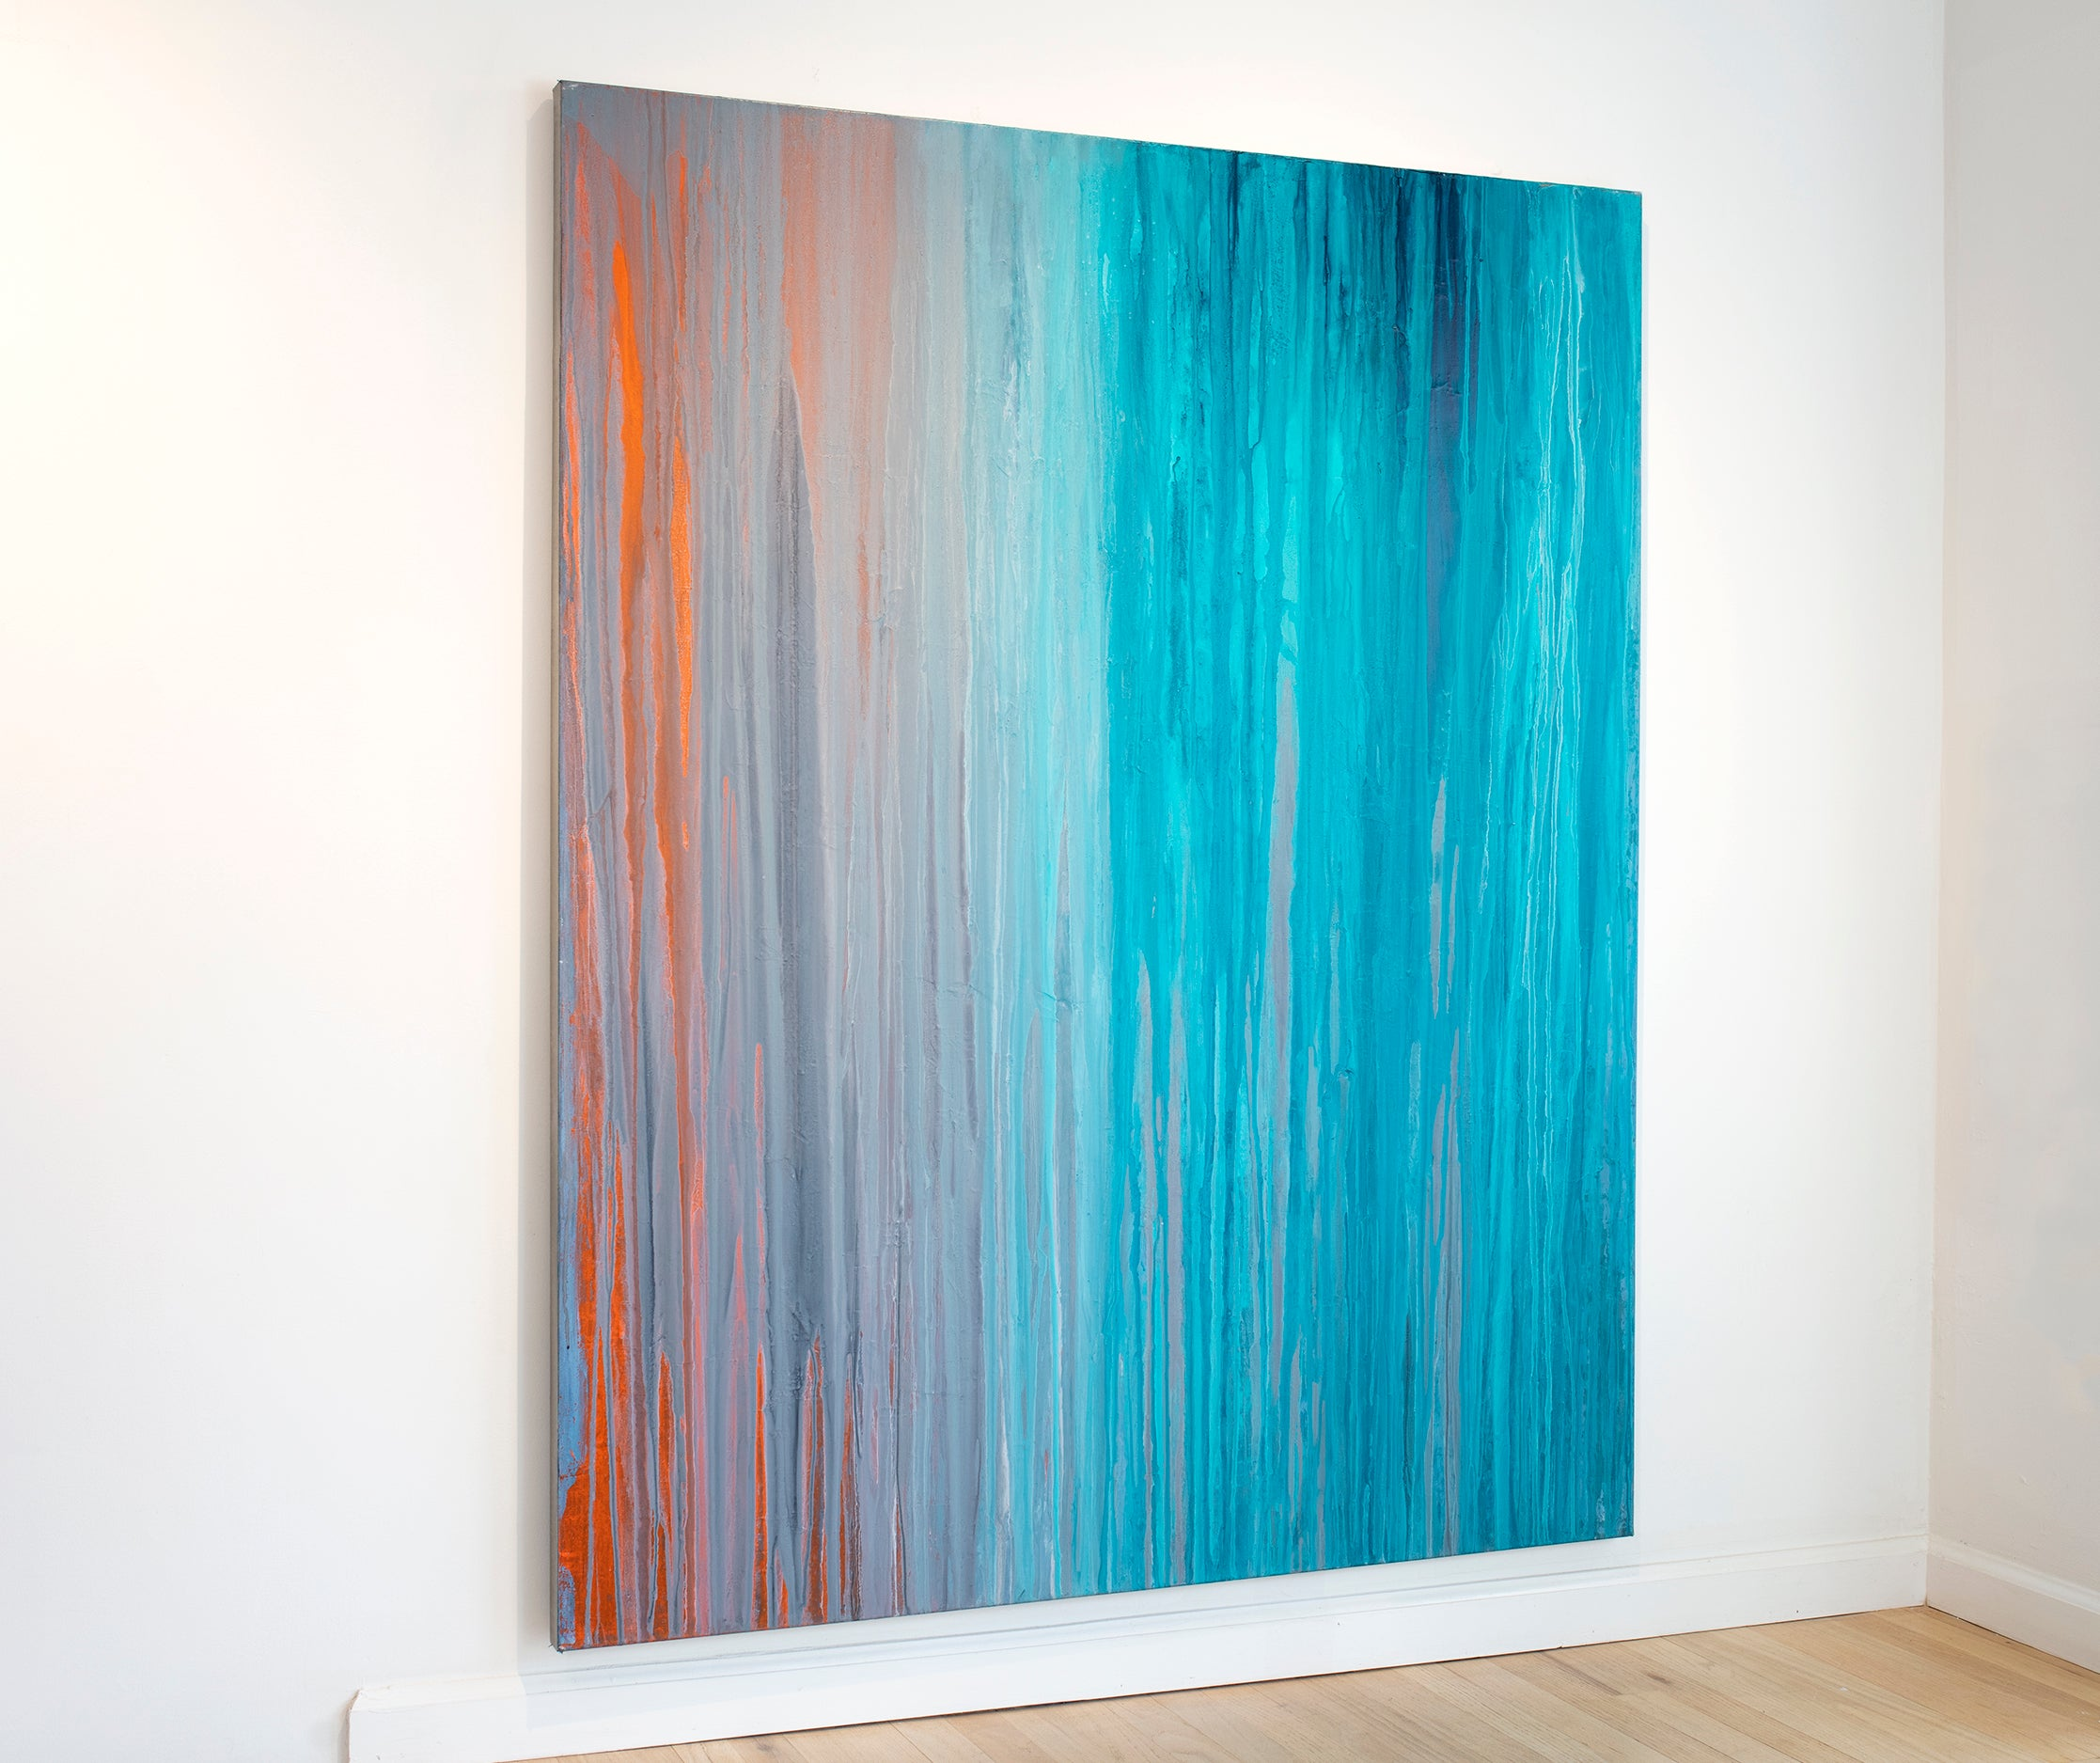 'Drenched in Teal', Large Contemporary Abstract Minimalist Acrylic Painting